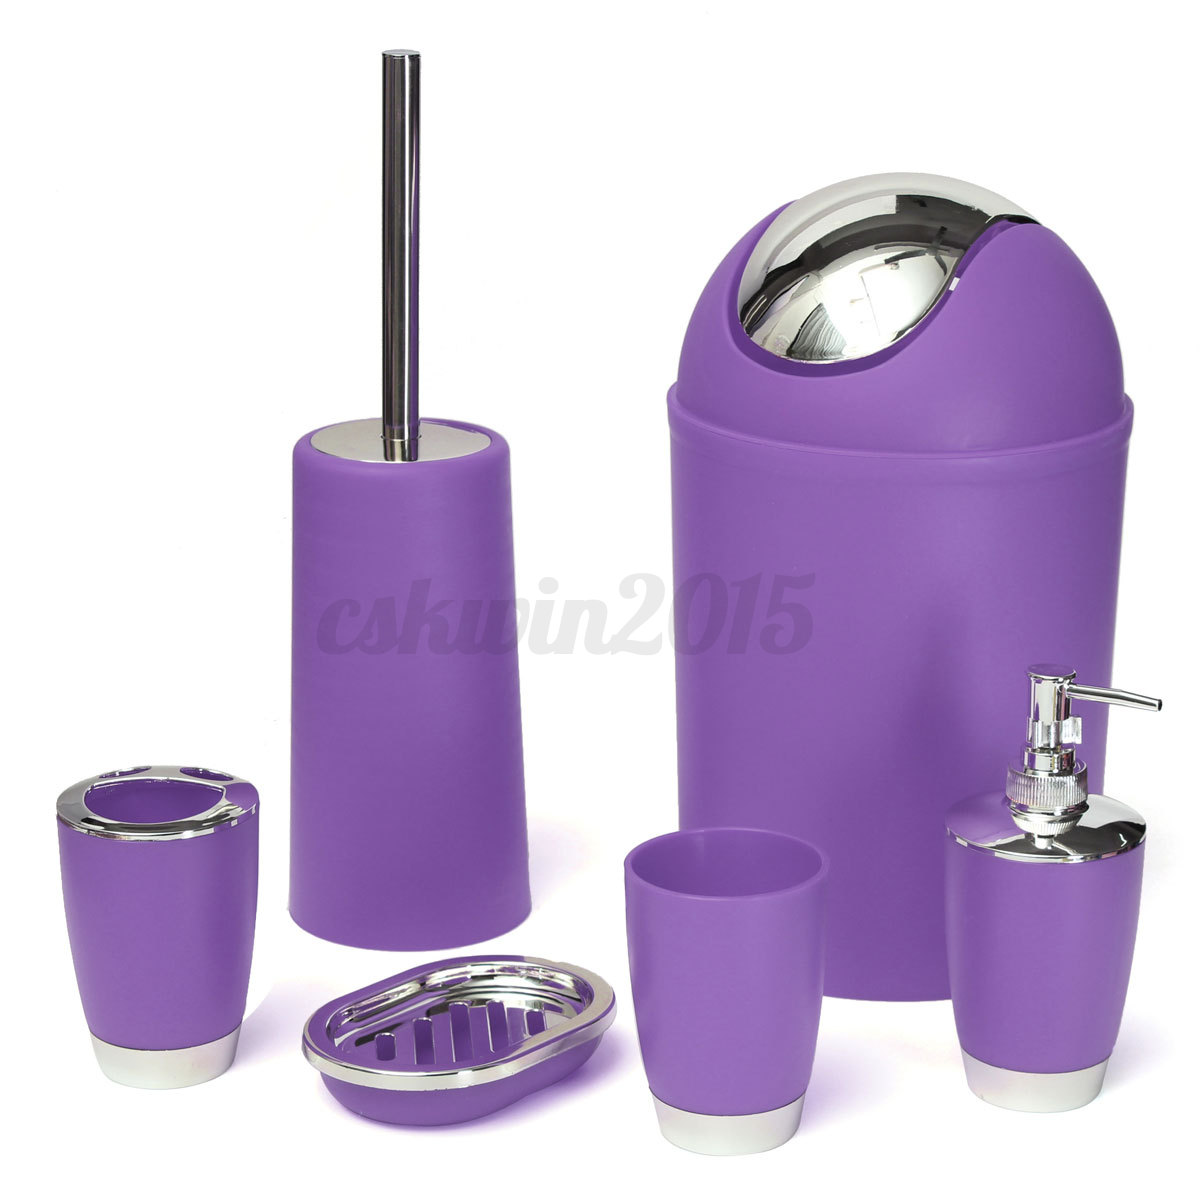 6pcs set bathroom accessory bin soap dish dispenser tumbler toothbrush holder ebay - Bathroom soap dish sets ...